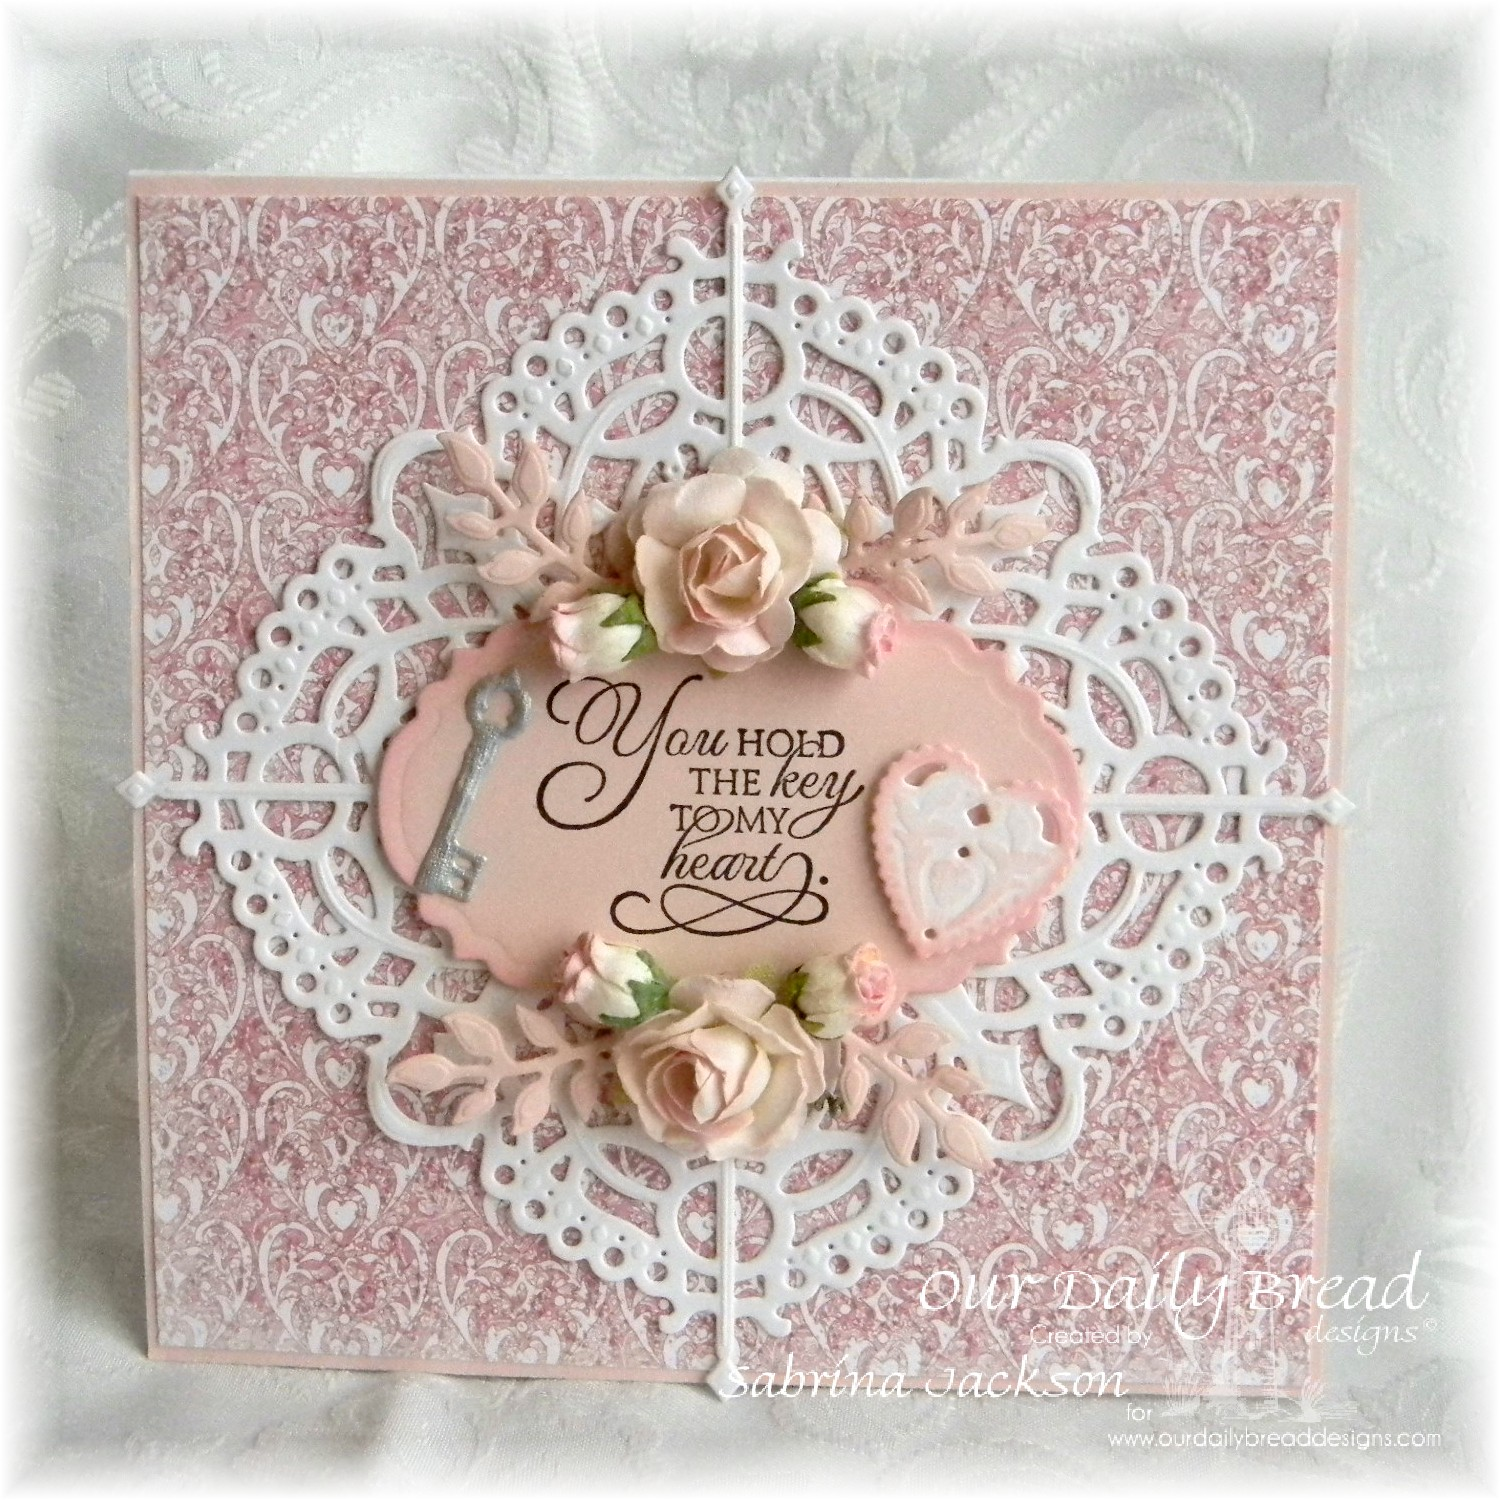 Stamps - Our Daily Bread Designs Key to Heaven, ODBD Heart and Soul Paper Collection, ODBD Custom Vintage Labels Die, ODBD Custom Angel Wings Die, ODBD Custom Decorative Corners Die, ODBD Custom Ornate Hearts Die, ODBD Custom Fancy Foliage Die